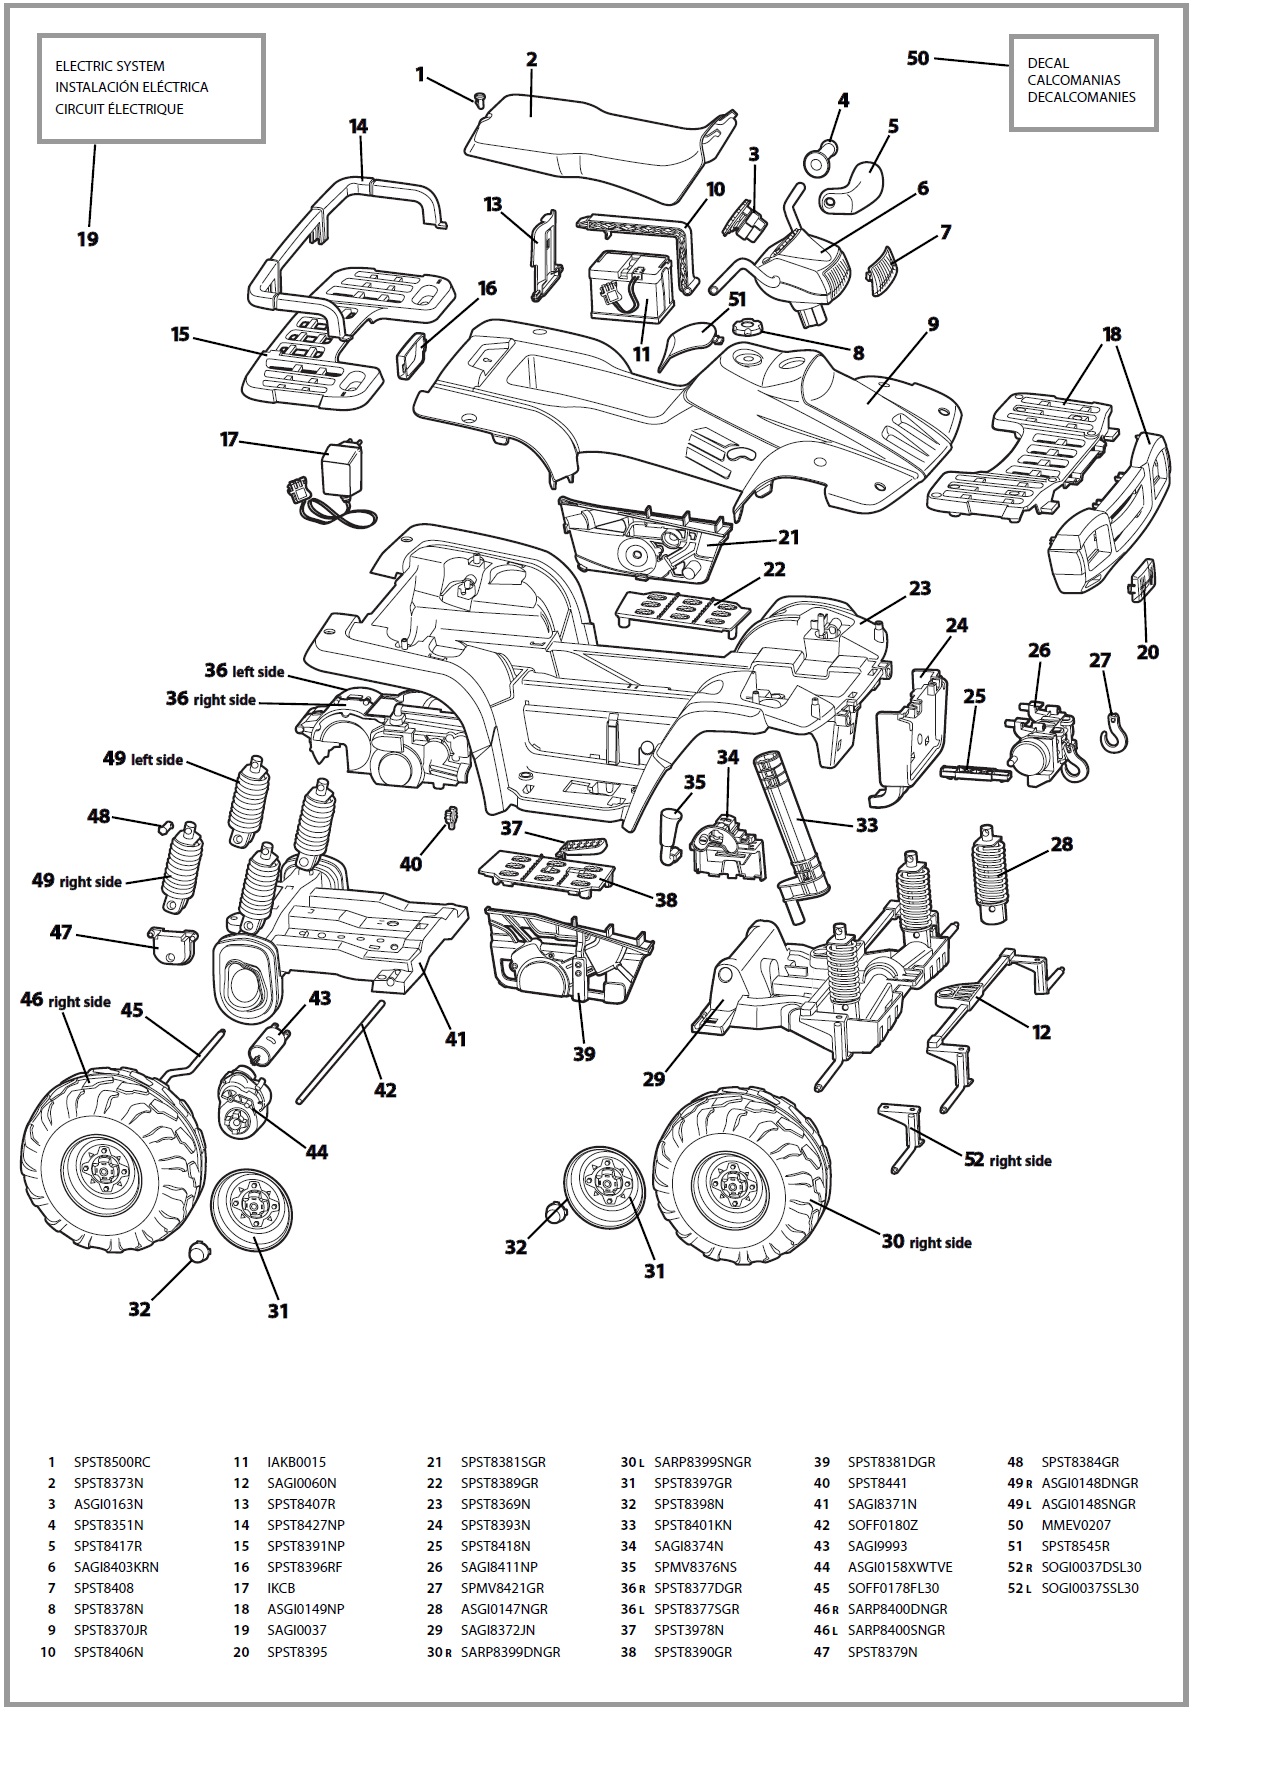 hight resolution of polaris ranger 700 4x4 wiring diagram polaris get free 2007 polaris 500 sportsman wiring diagram 1999 polaris sportsman 500 wiring diagram